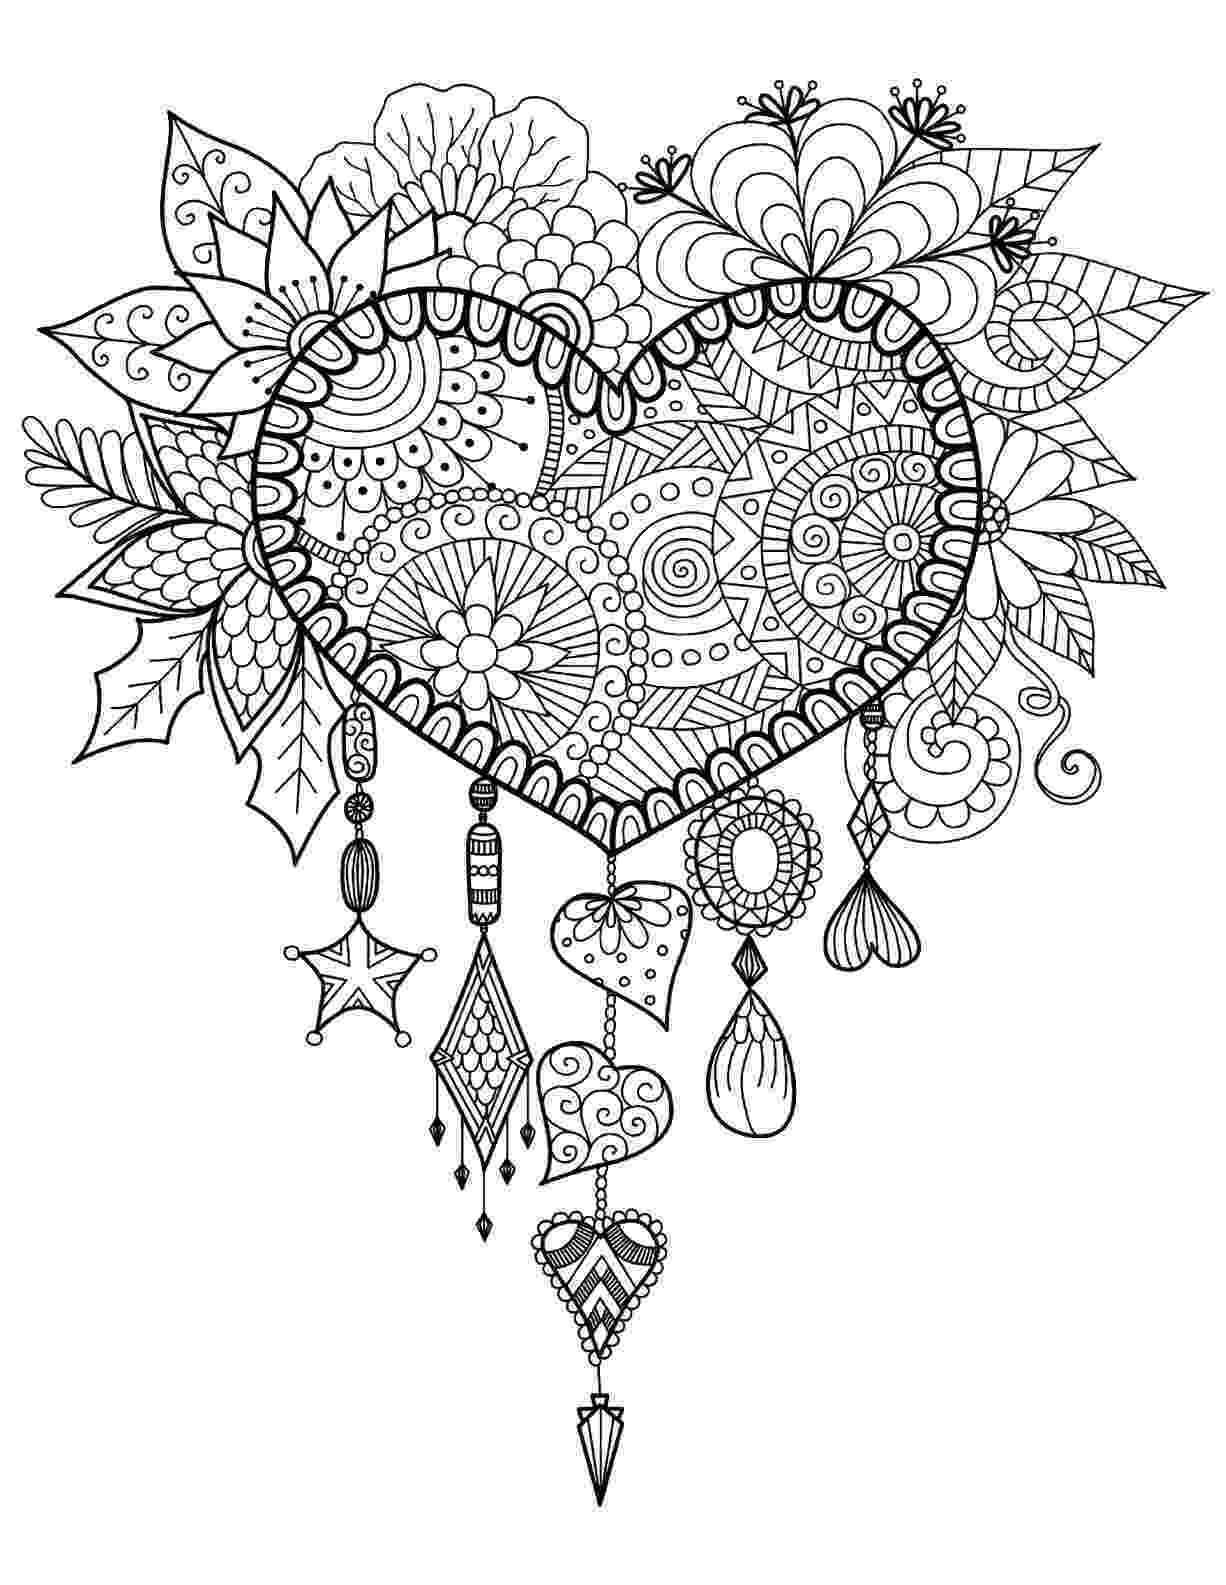 printable coloring pages for adults stress anti stress coloring pages for adults free printable anti coloring for printable adults stress pages